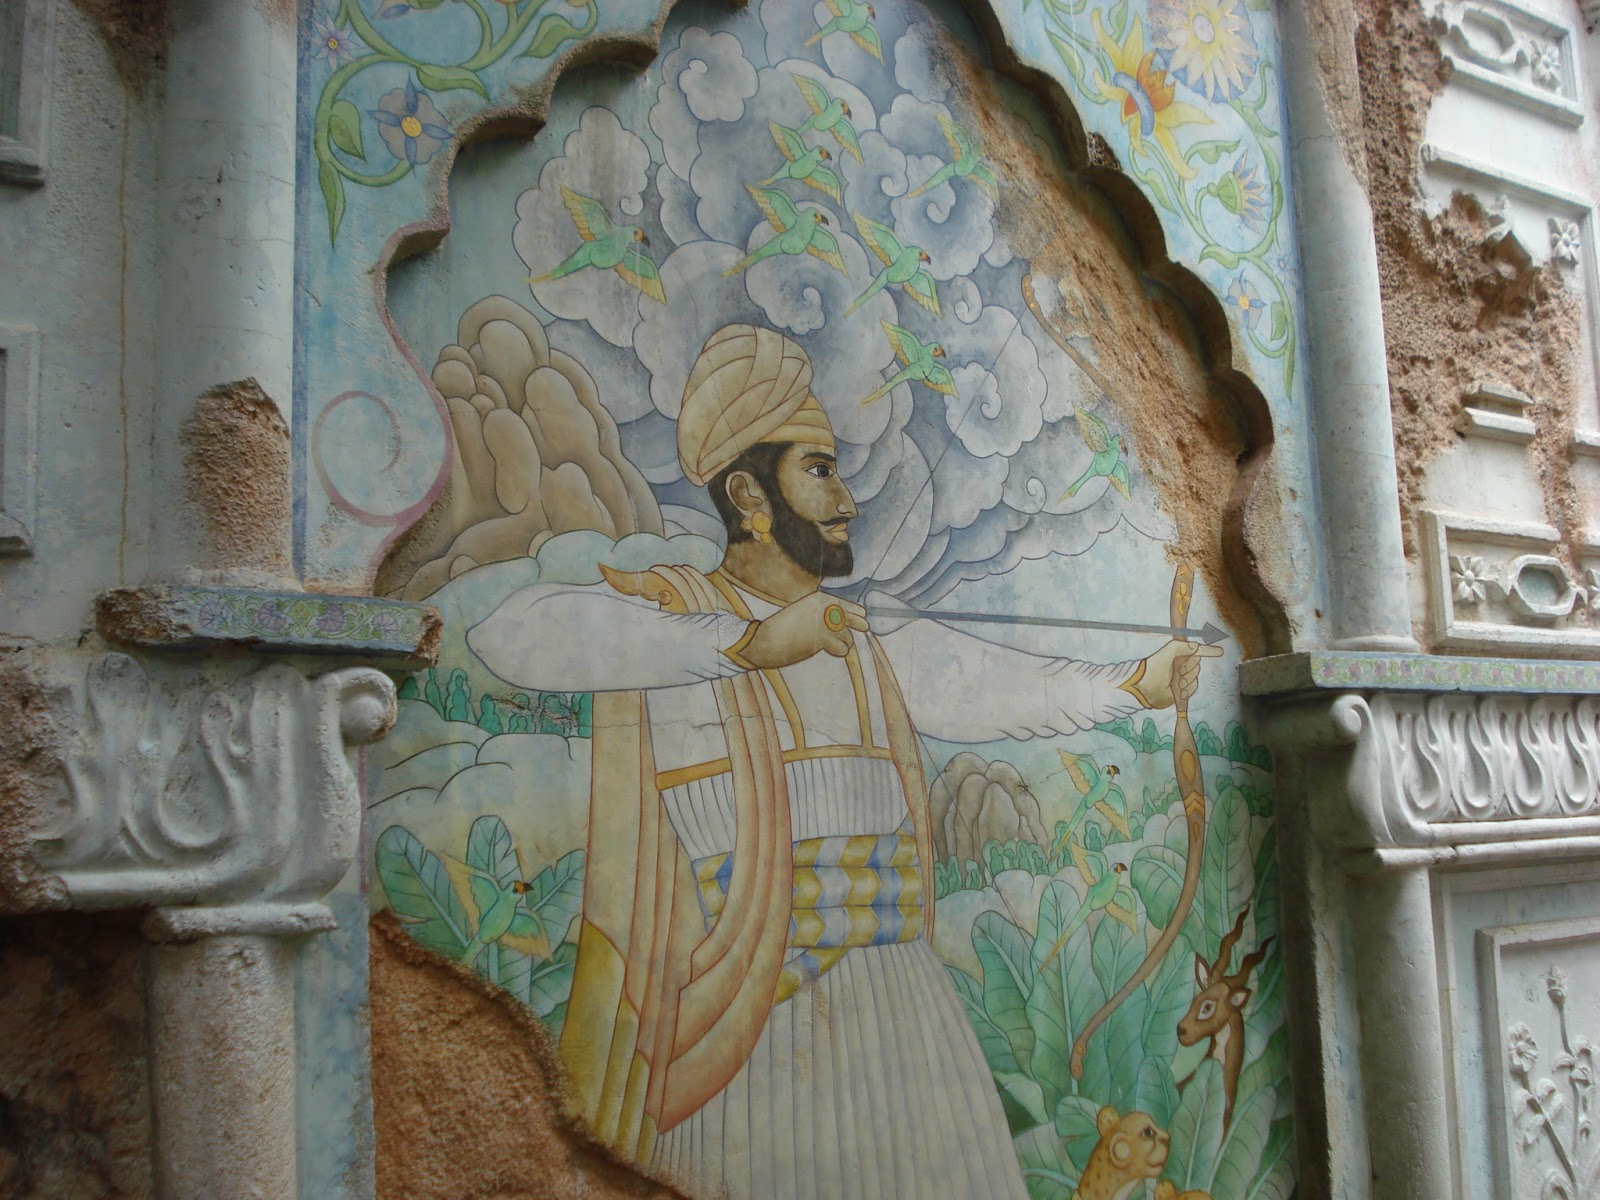 There are 2 Hidden Mickeys in this mural on the Maharajah Jungle Trek in Animal Kingdom.